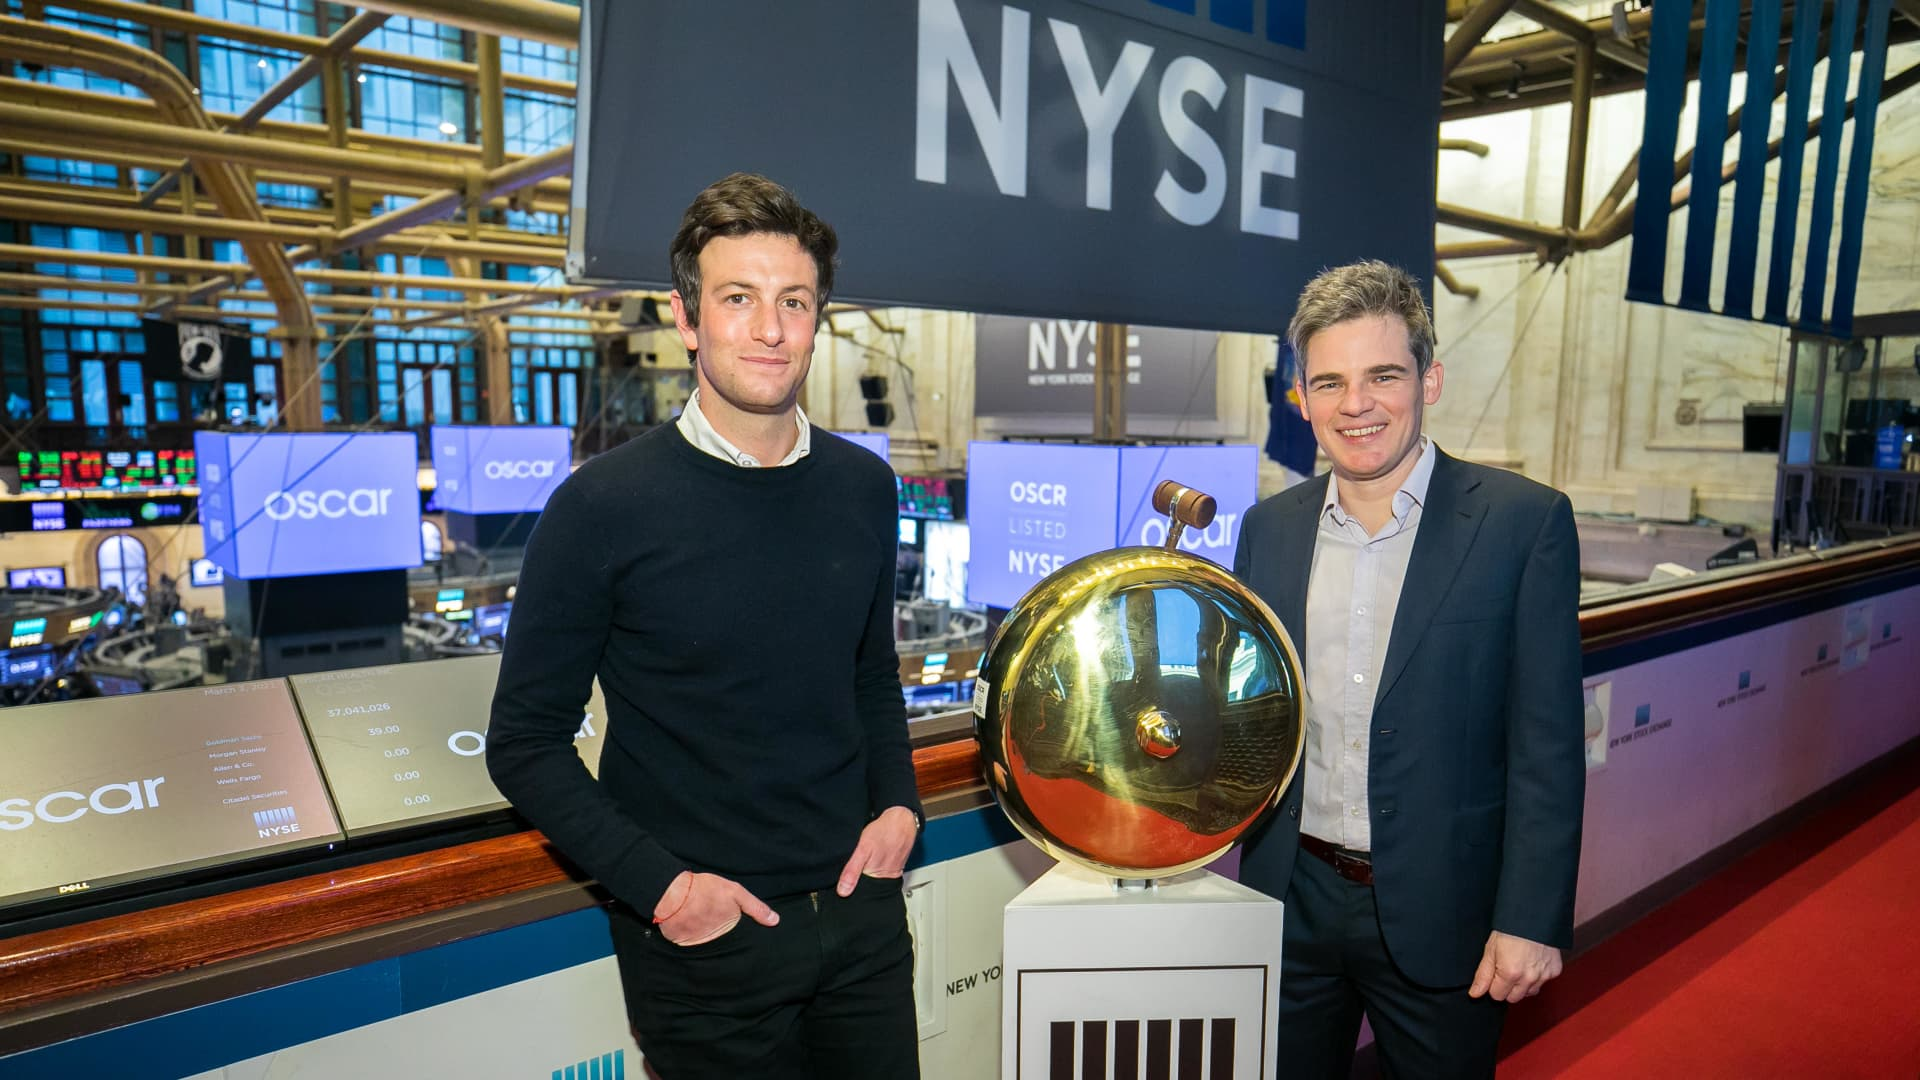 Oscar Health, Inc. Co-Founders Mario Schlosser and Josh Kushner, rings The Opening Bell®.